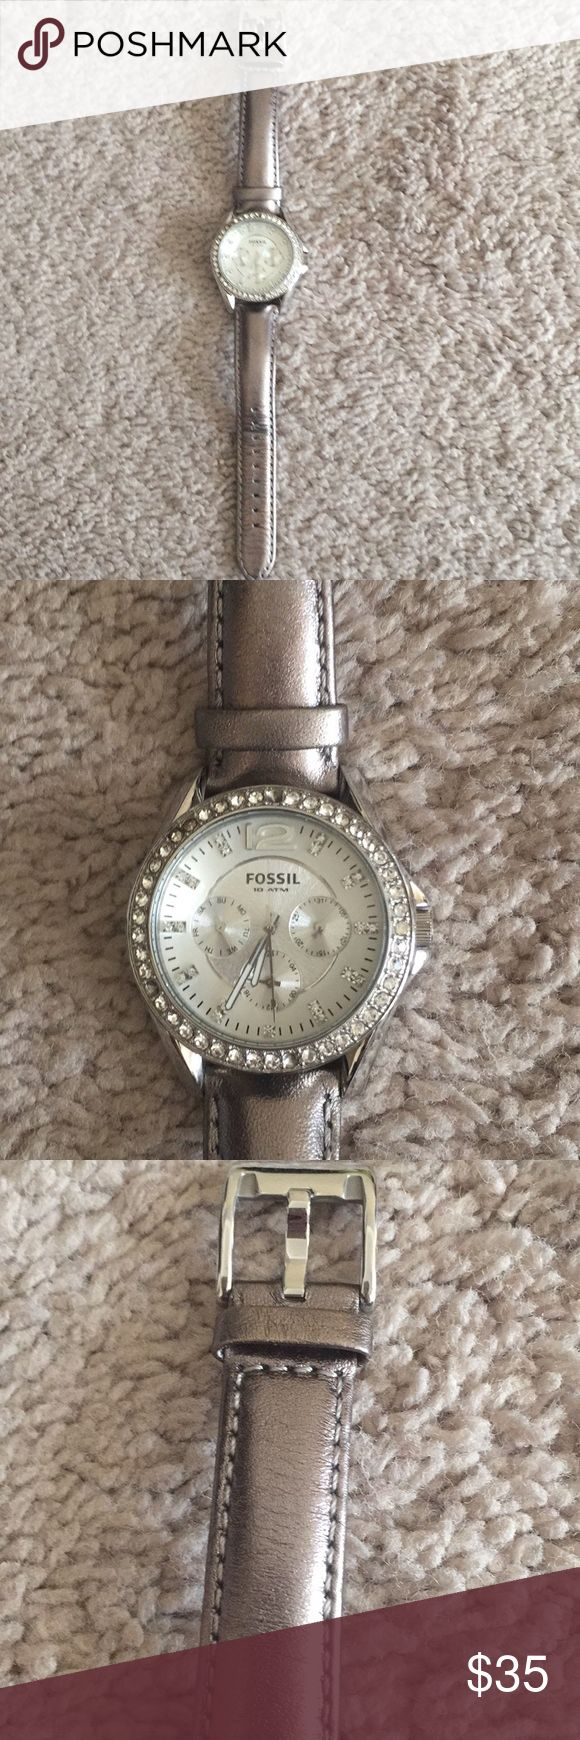 Silver Fossil watch Great condition Fossil watch. Metallic silver genuine leather band. Light silver face with rhinestones surrounding it. Needs a new battery. Accessories Watches